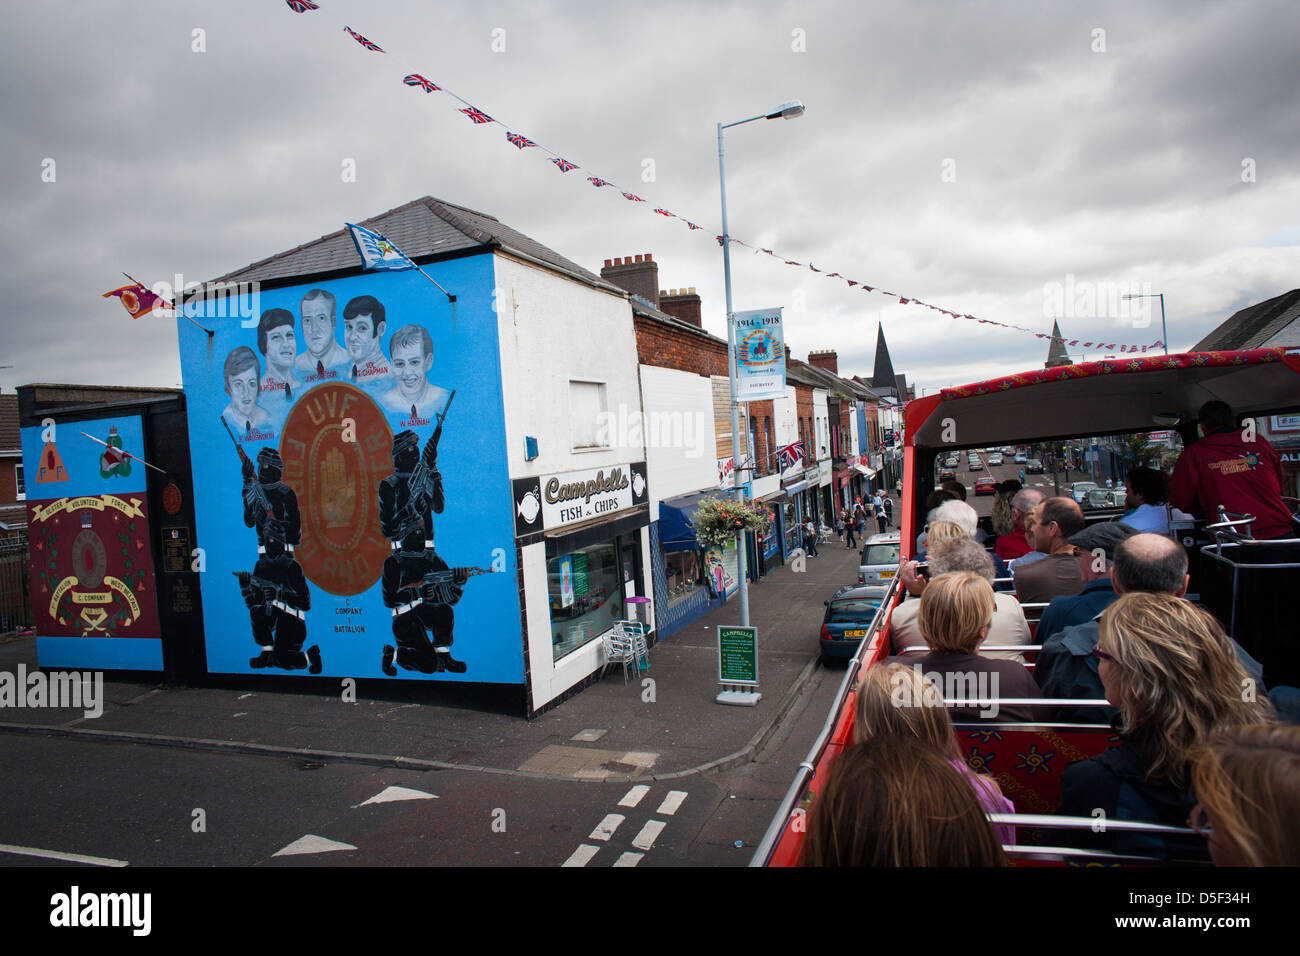 A tourist bus travels along the Shankill Road, Belfast, Northern Ireland. - Stock Image